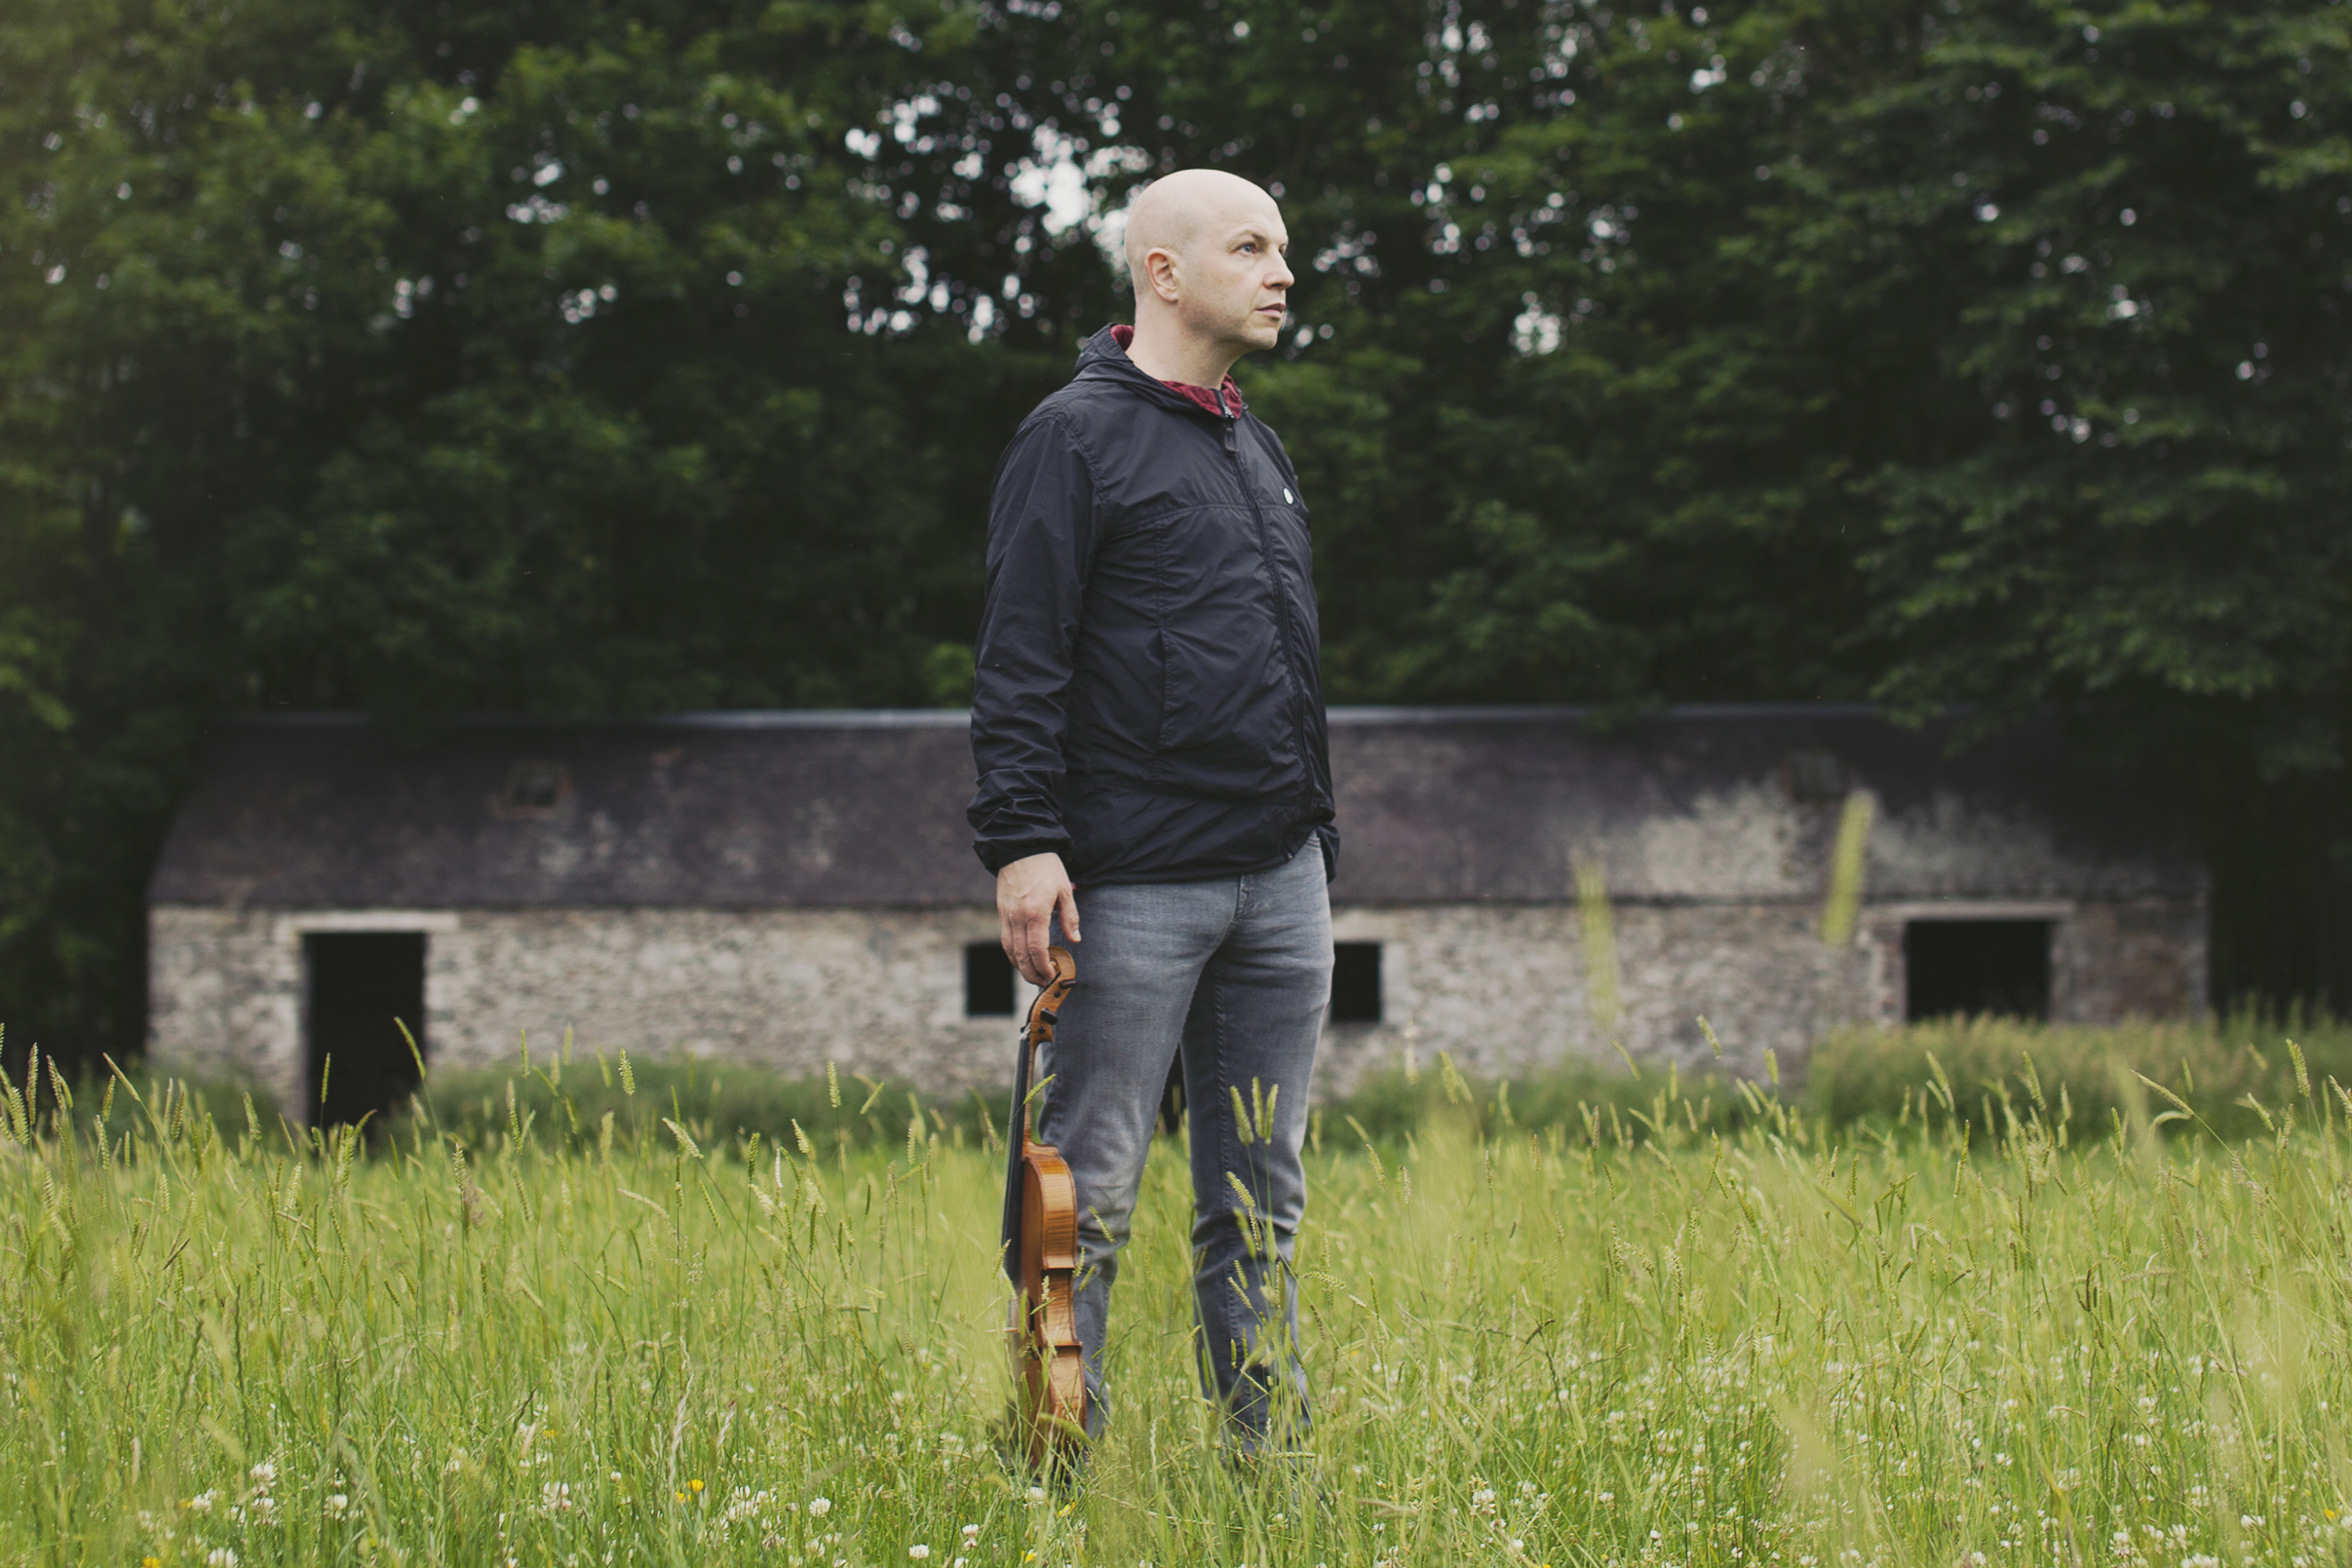 John McCusker Band 25th Anniversary Tour feat. Andy Cutting, Adam Holmes, Innes White & Toby Shaer with Special Guest Heidi Talbot